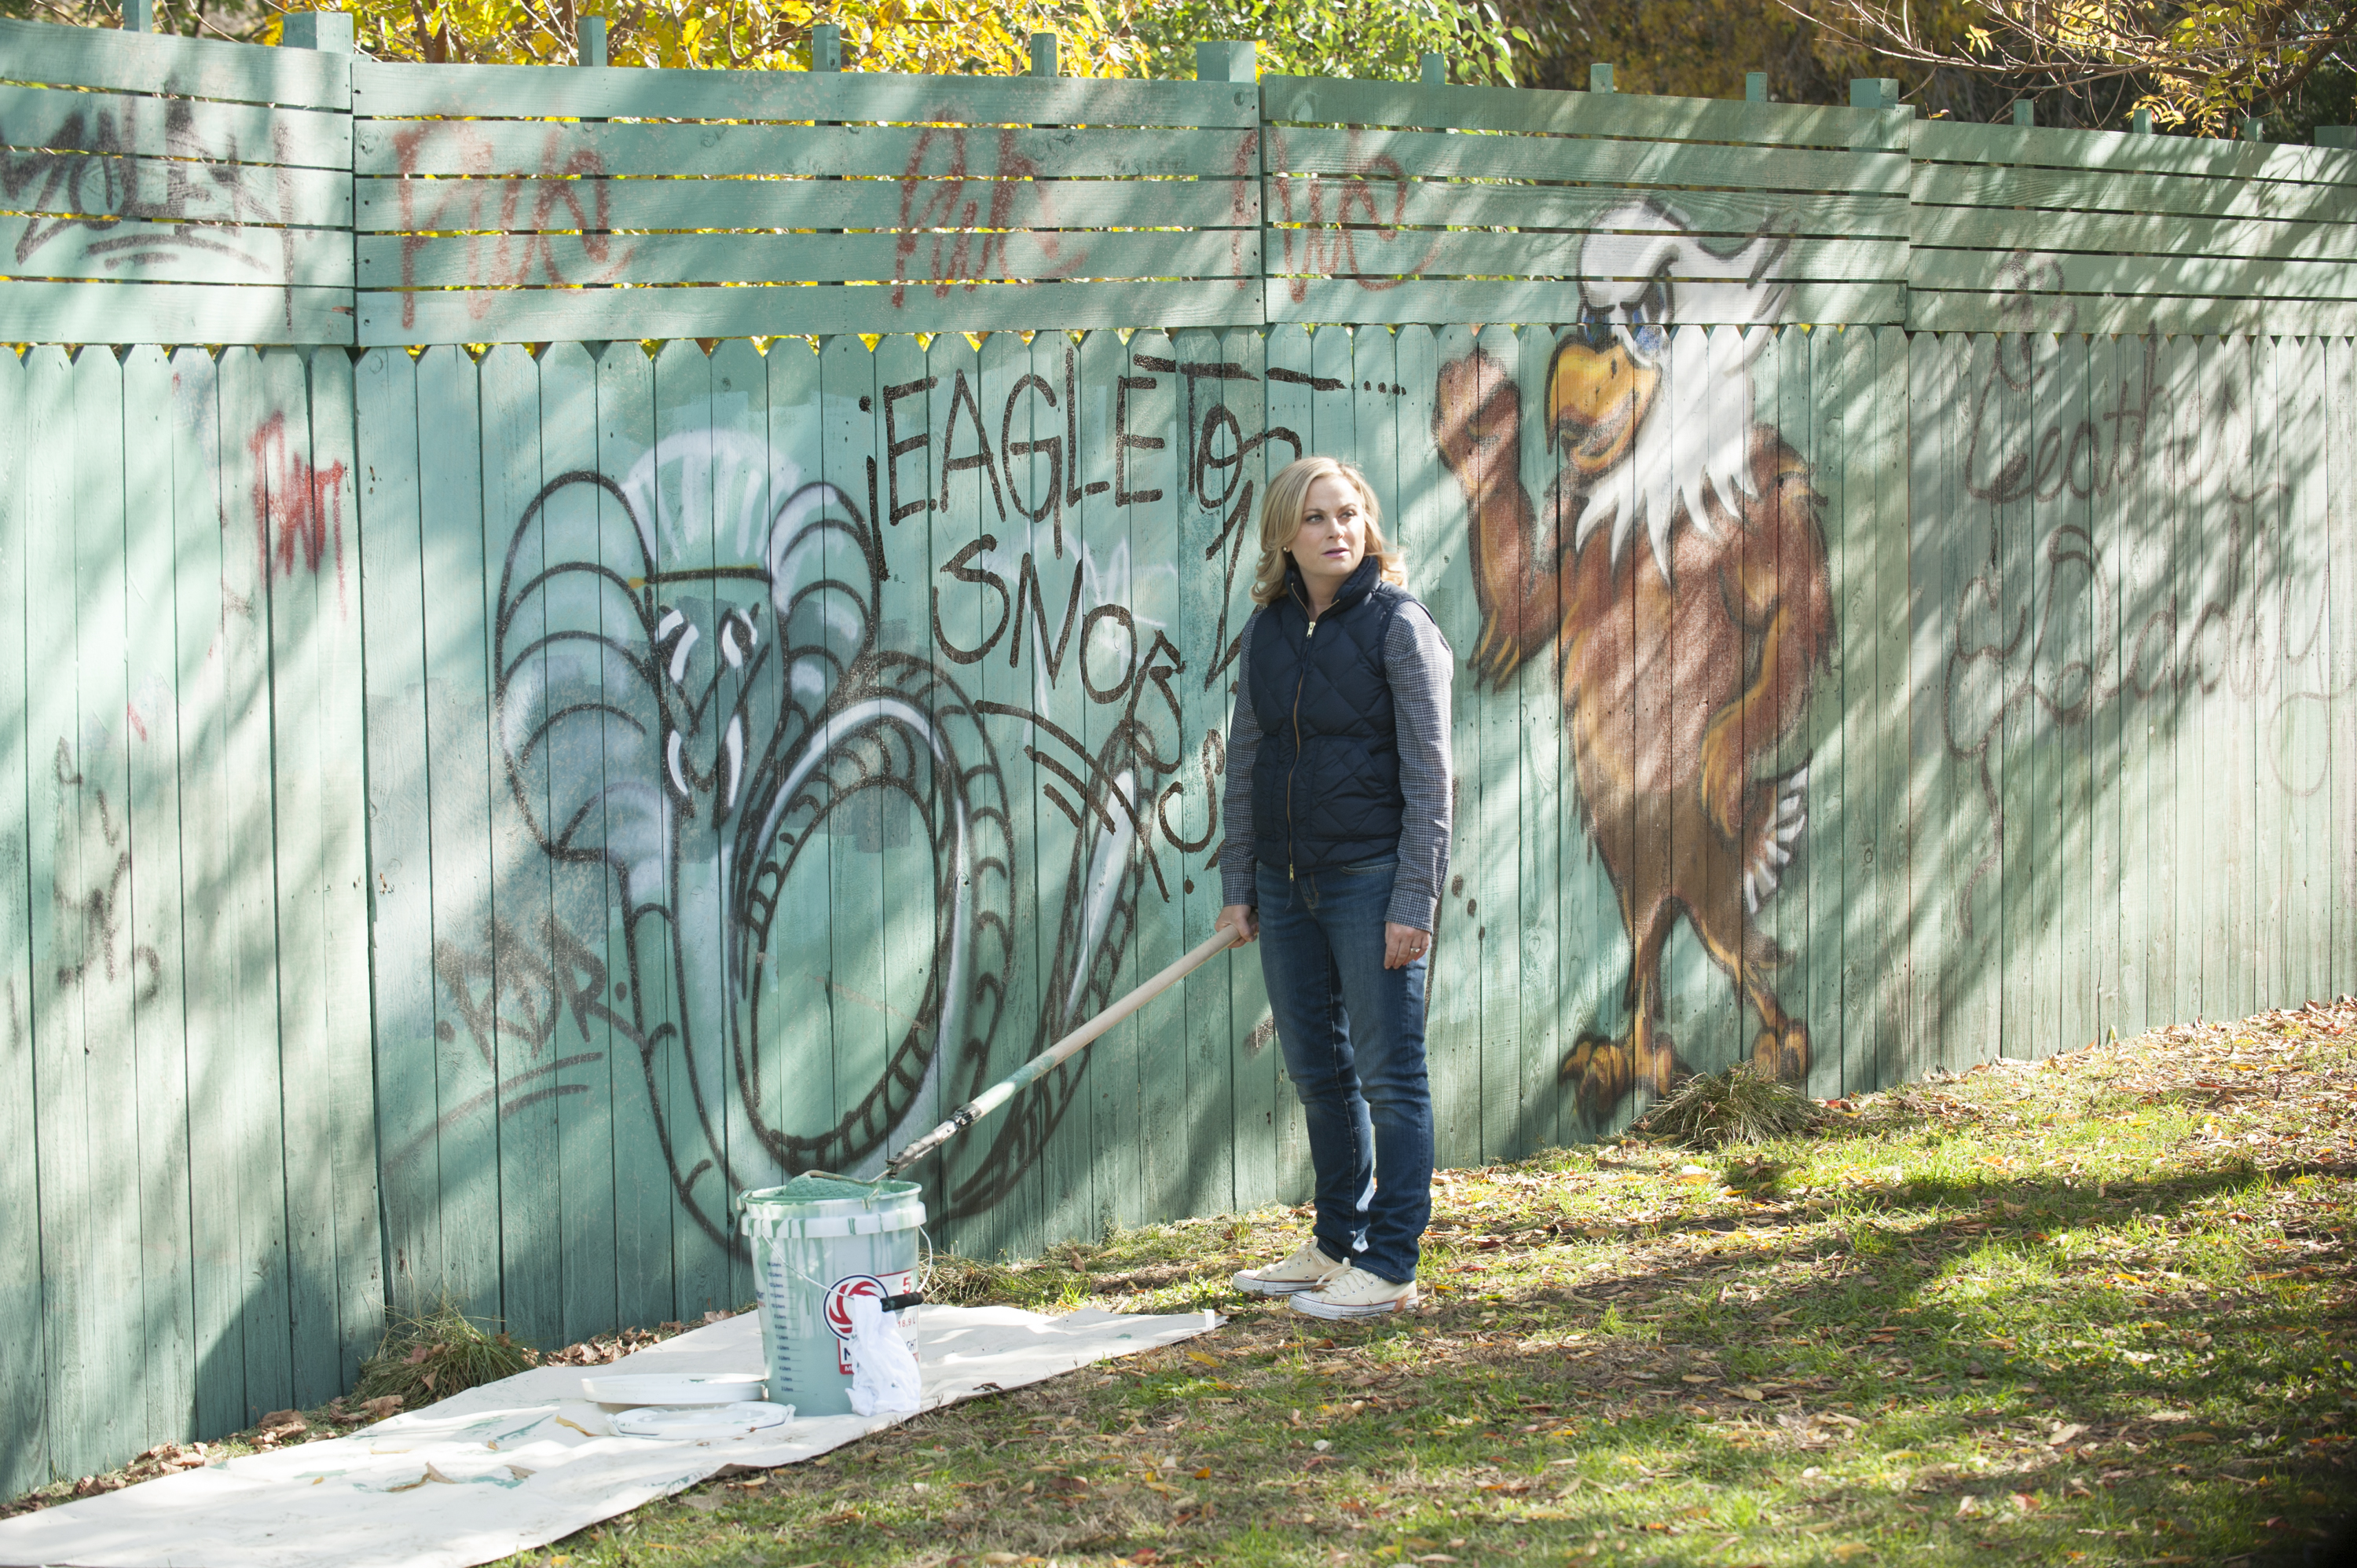 Parks and Recreation - Leslie Knope cleans graffiti from the Pawnee-Eagleton wall